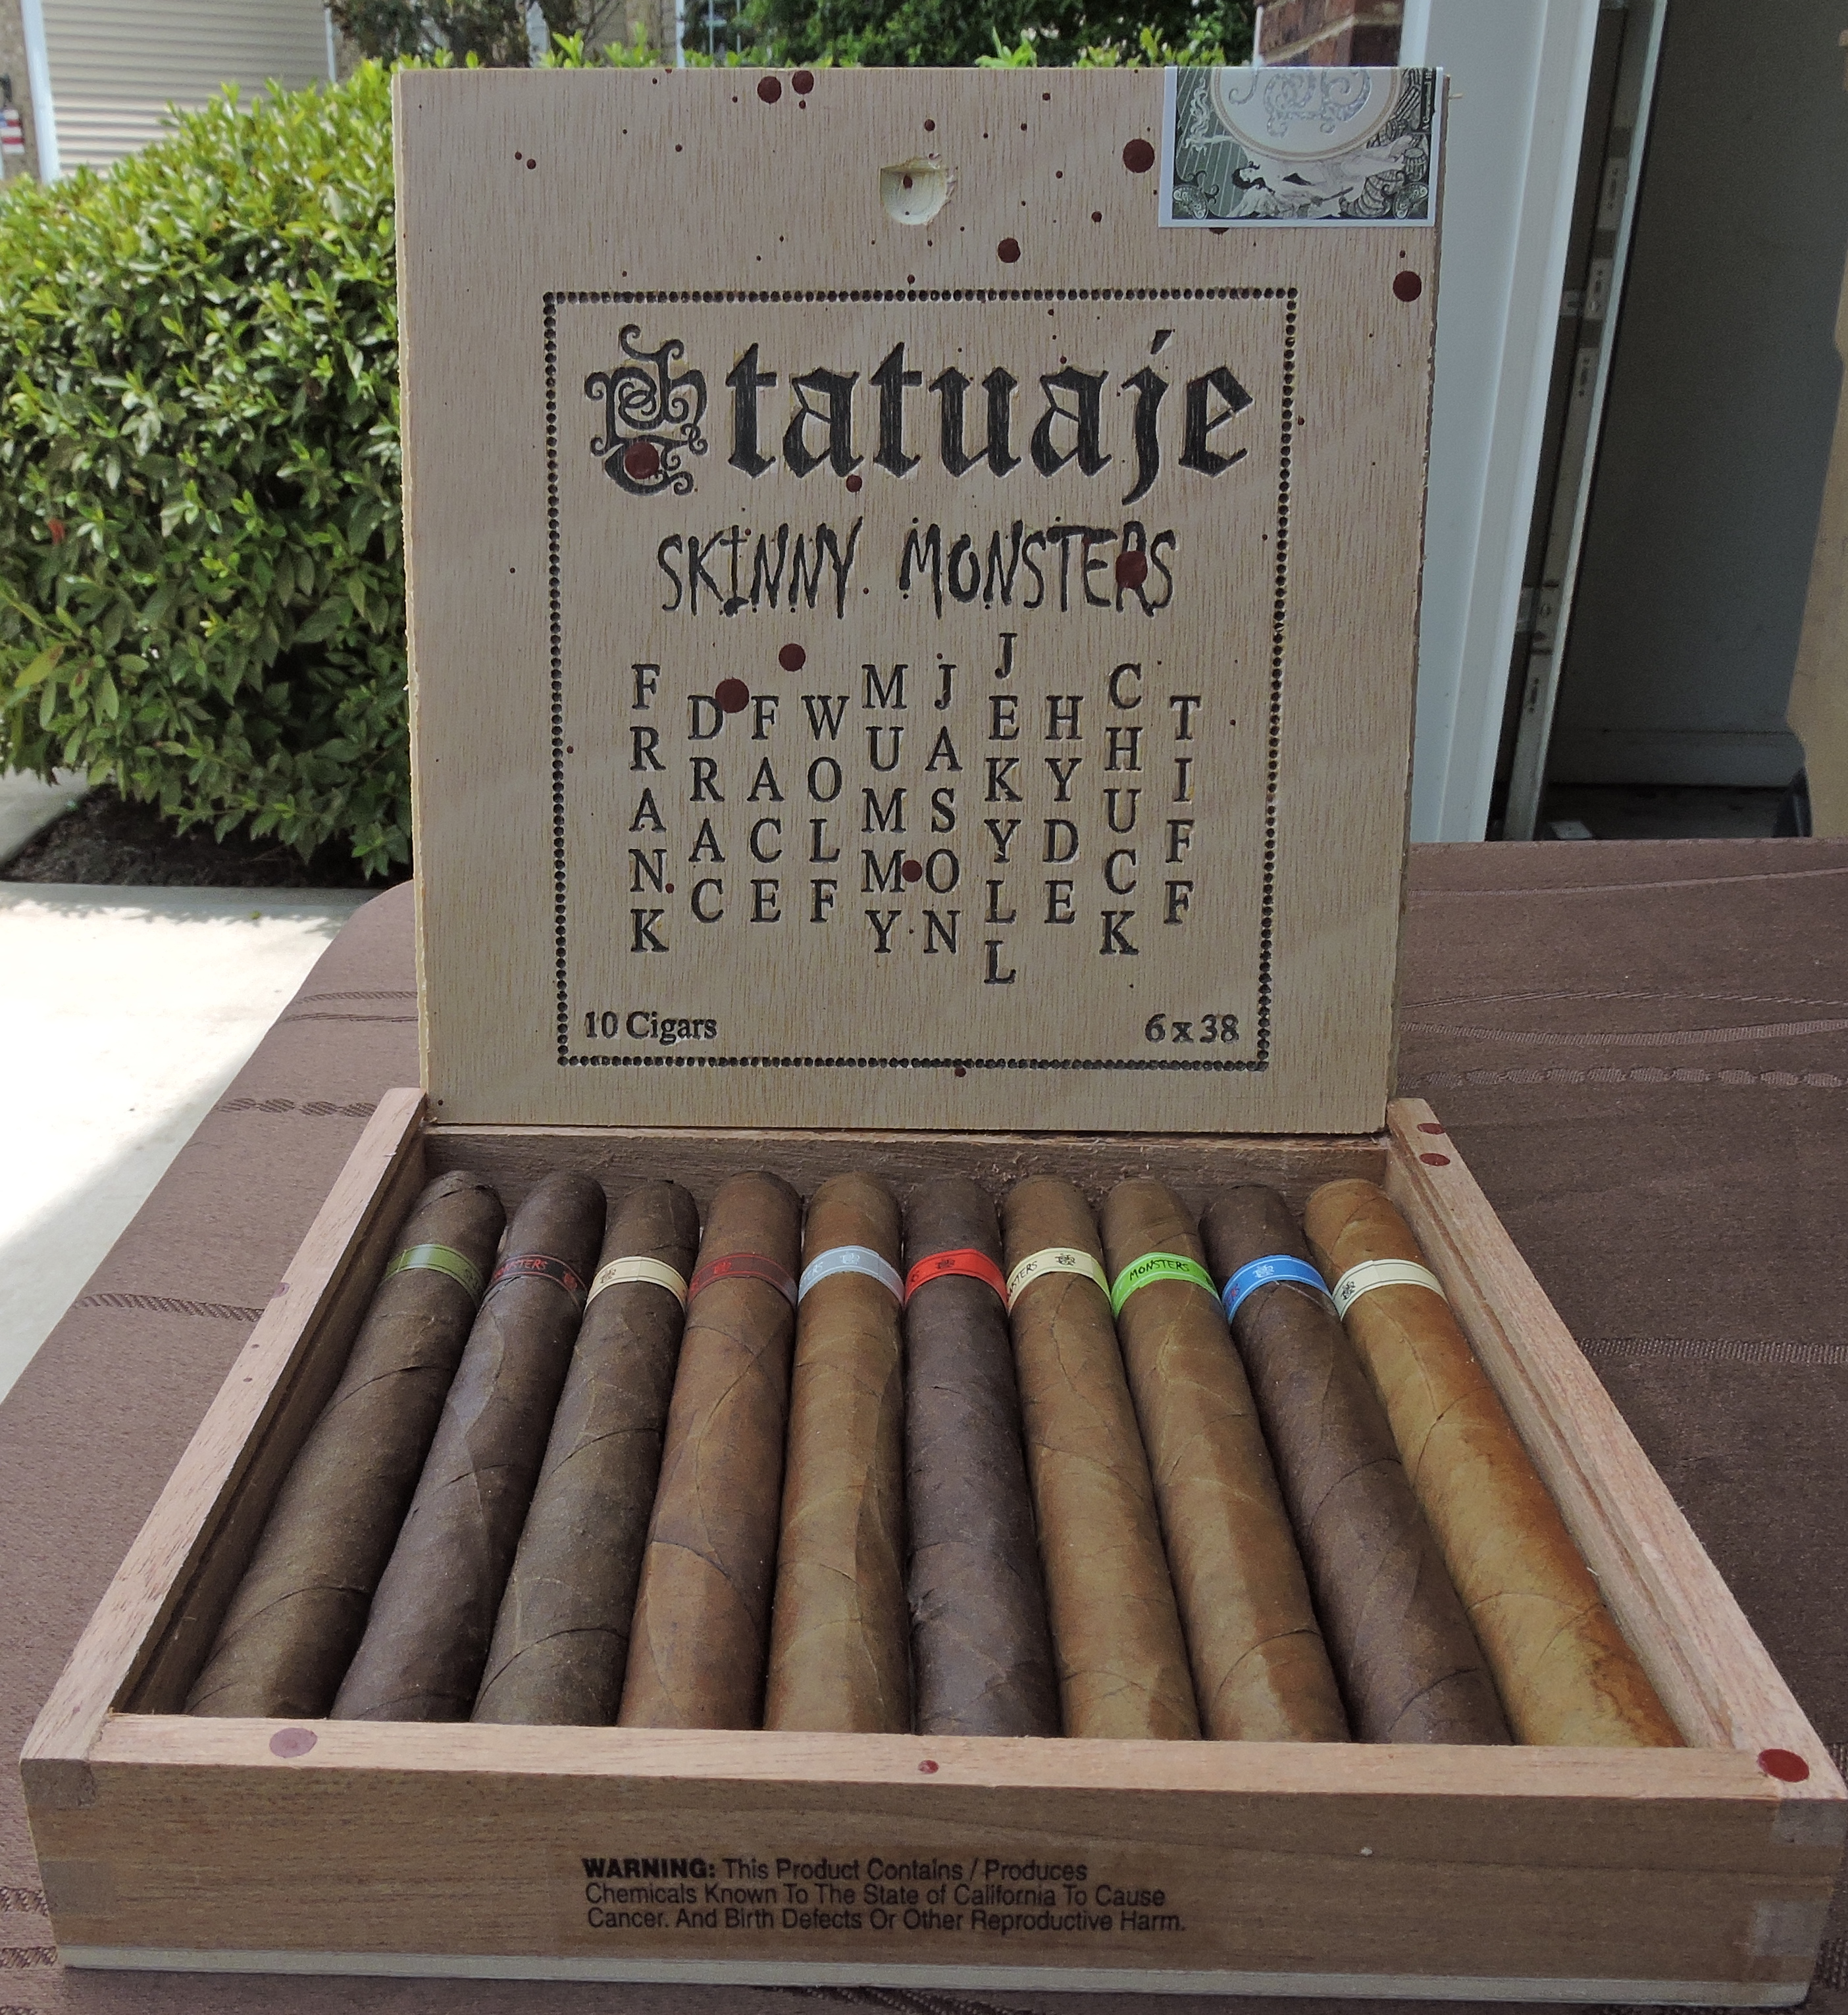 Tatuaje_Skinny_Monsters_Tiff_Open_Box